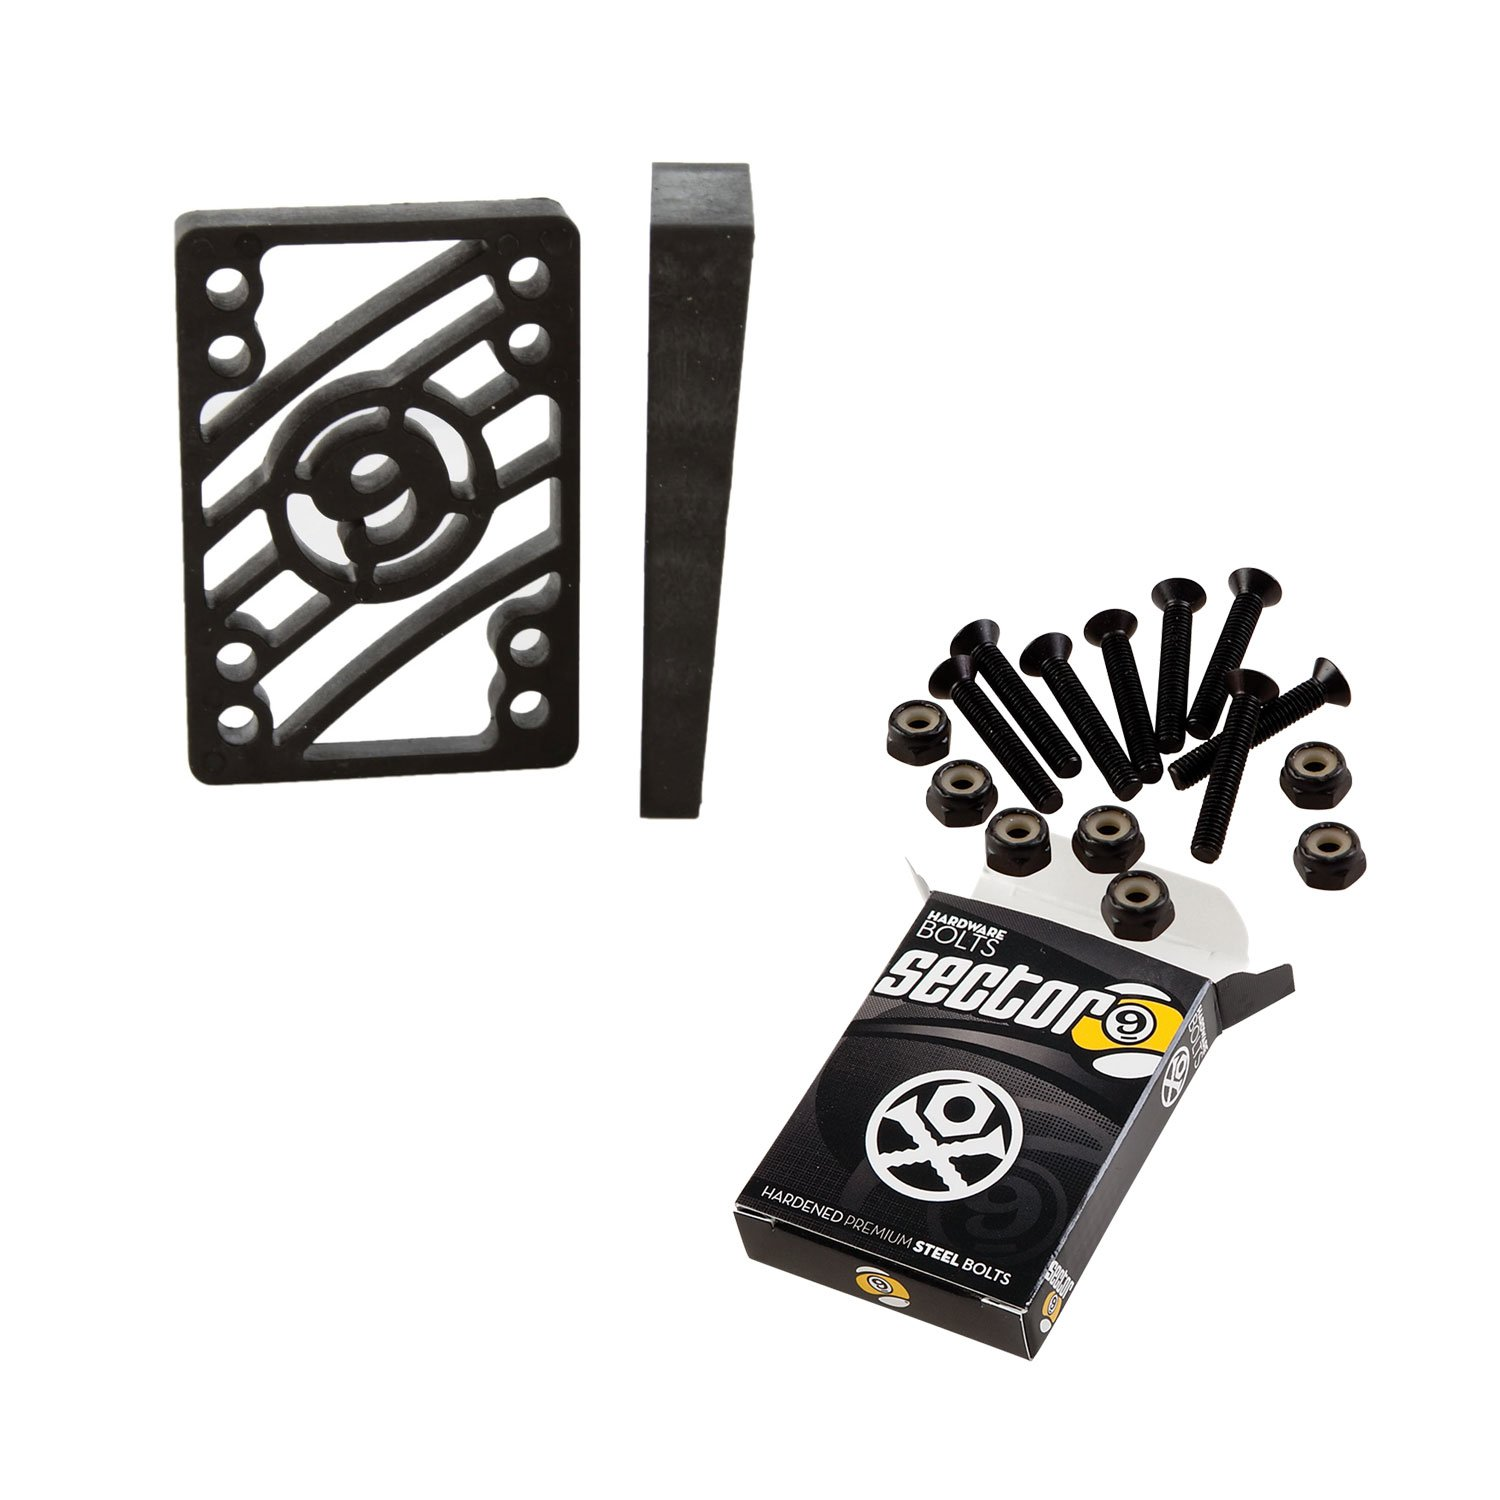 Sector 9 Longboard 1 1/2'' Hardware and Angled Risers Riser Pad Kit